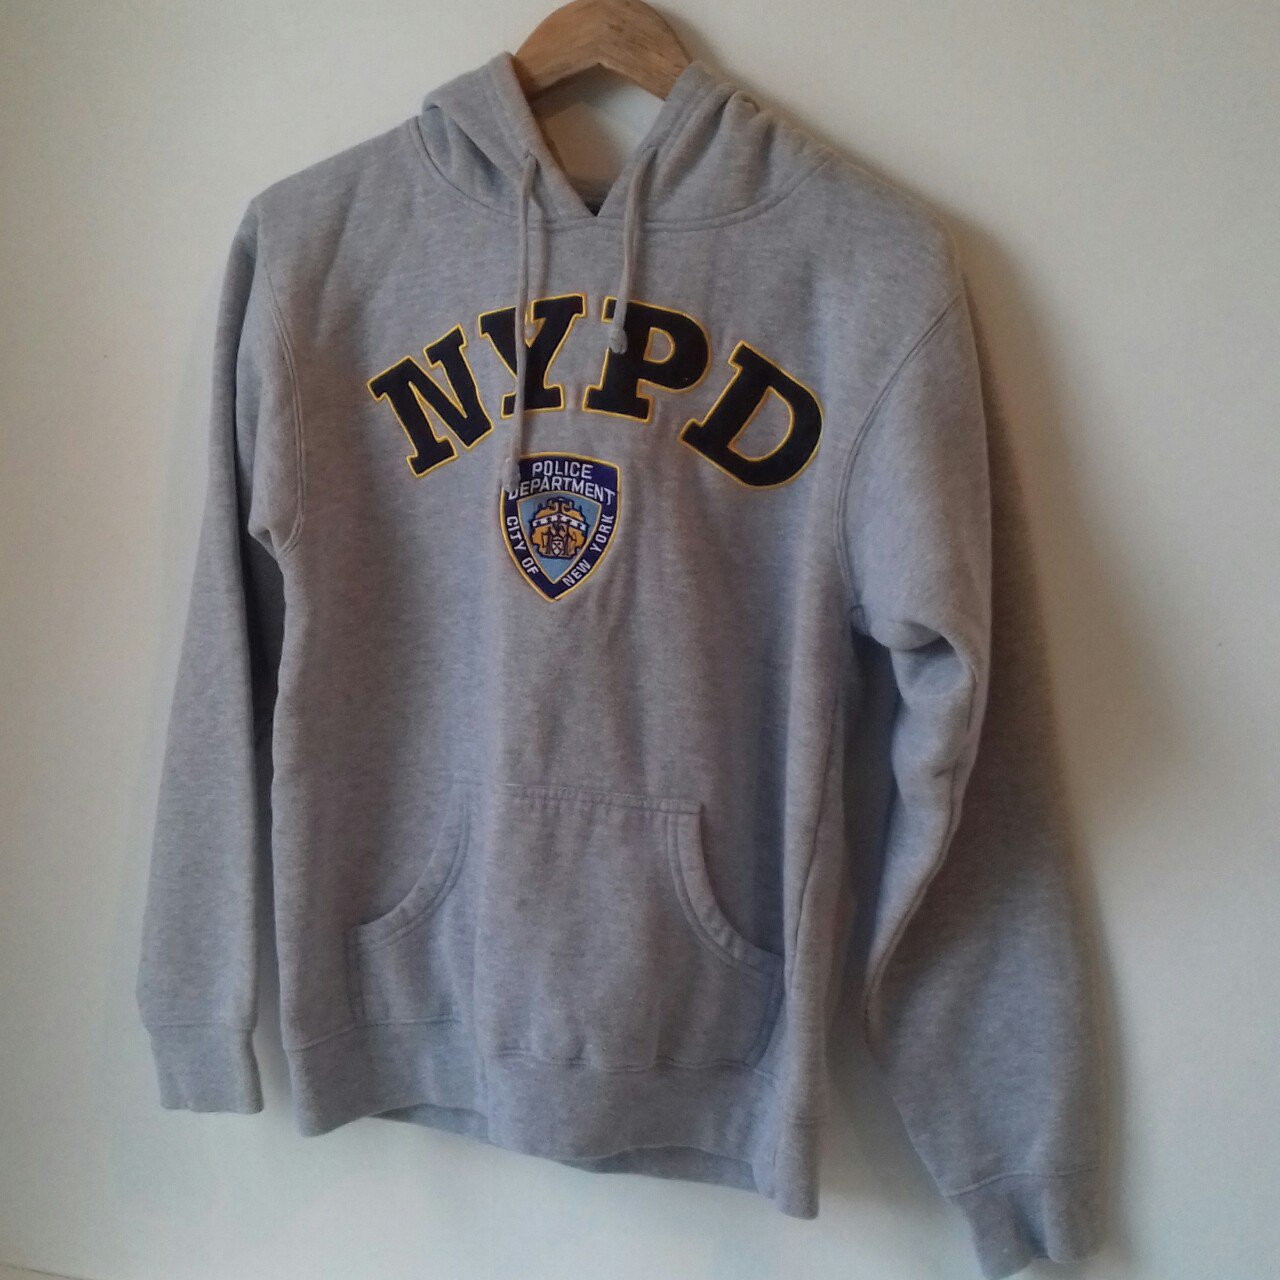 1278f65af @mcilroyliam. last month. United Kingdom. Mens grey retro nypd police  department hoodie